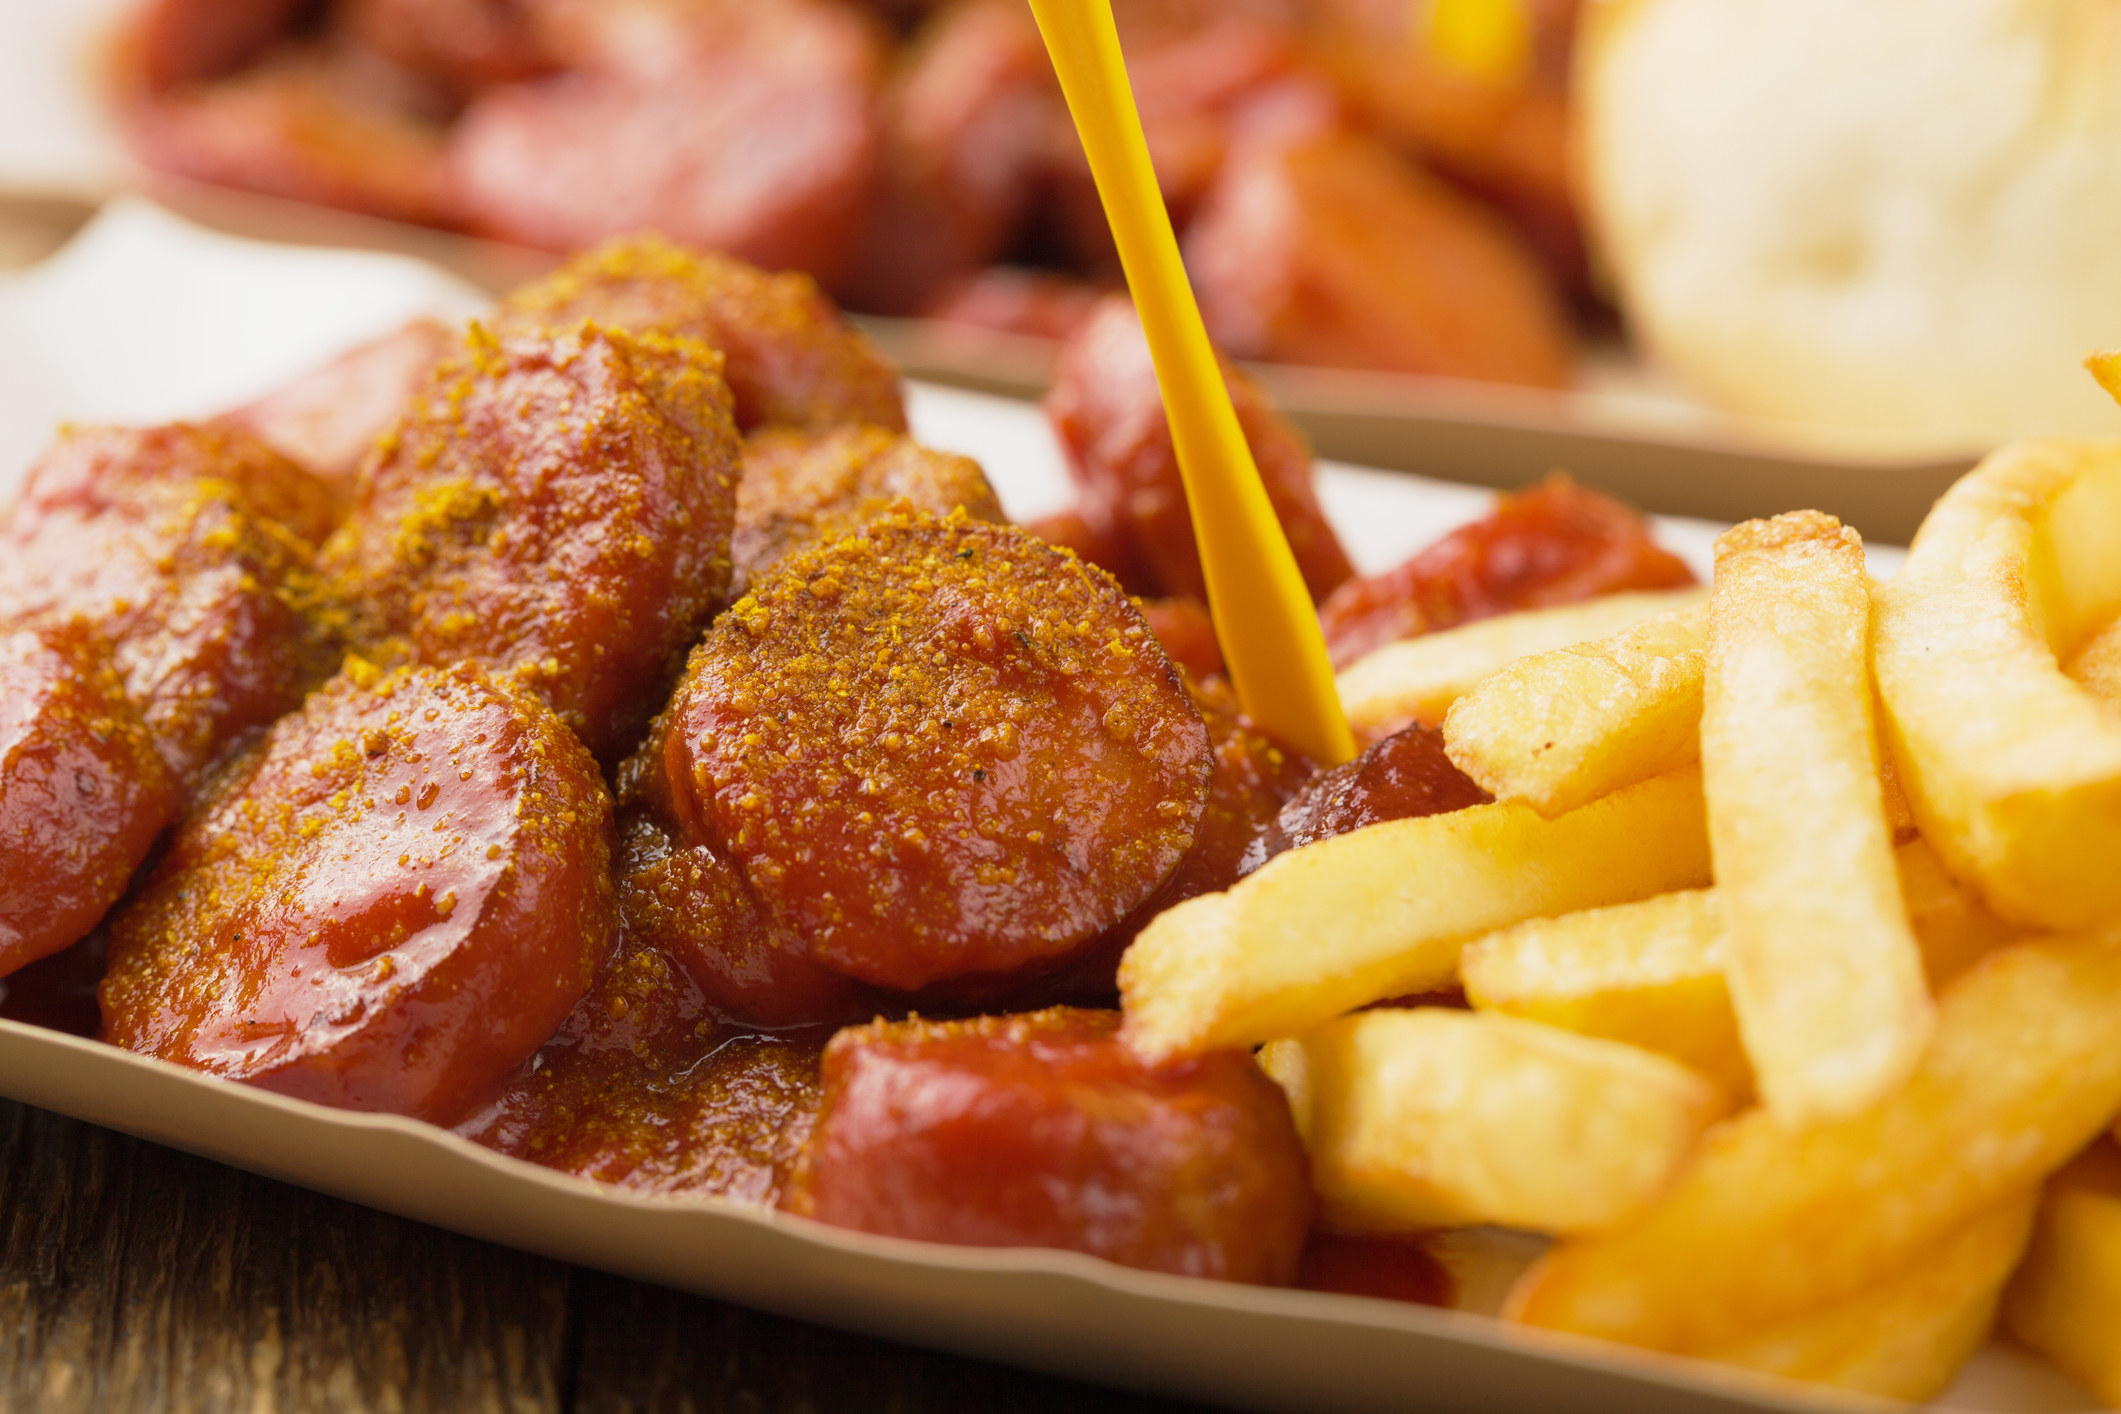 chopped up sausages sprinkled with curry powder and a pile of french fries